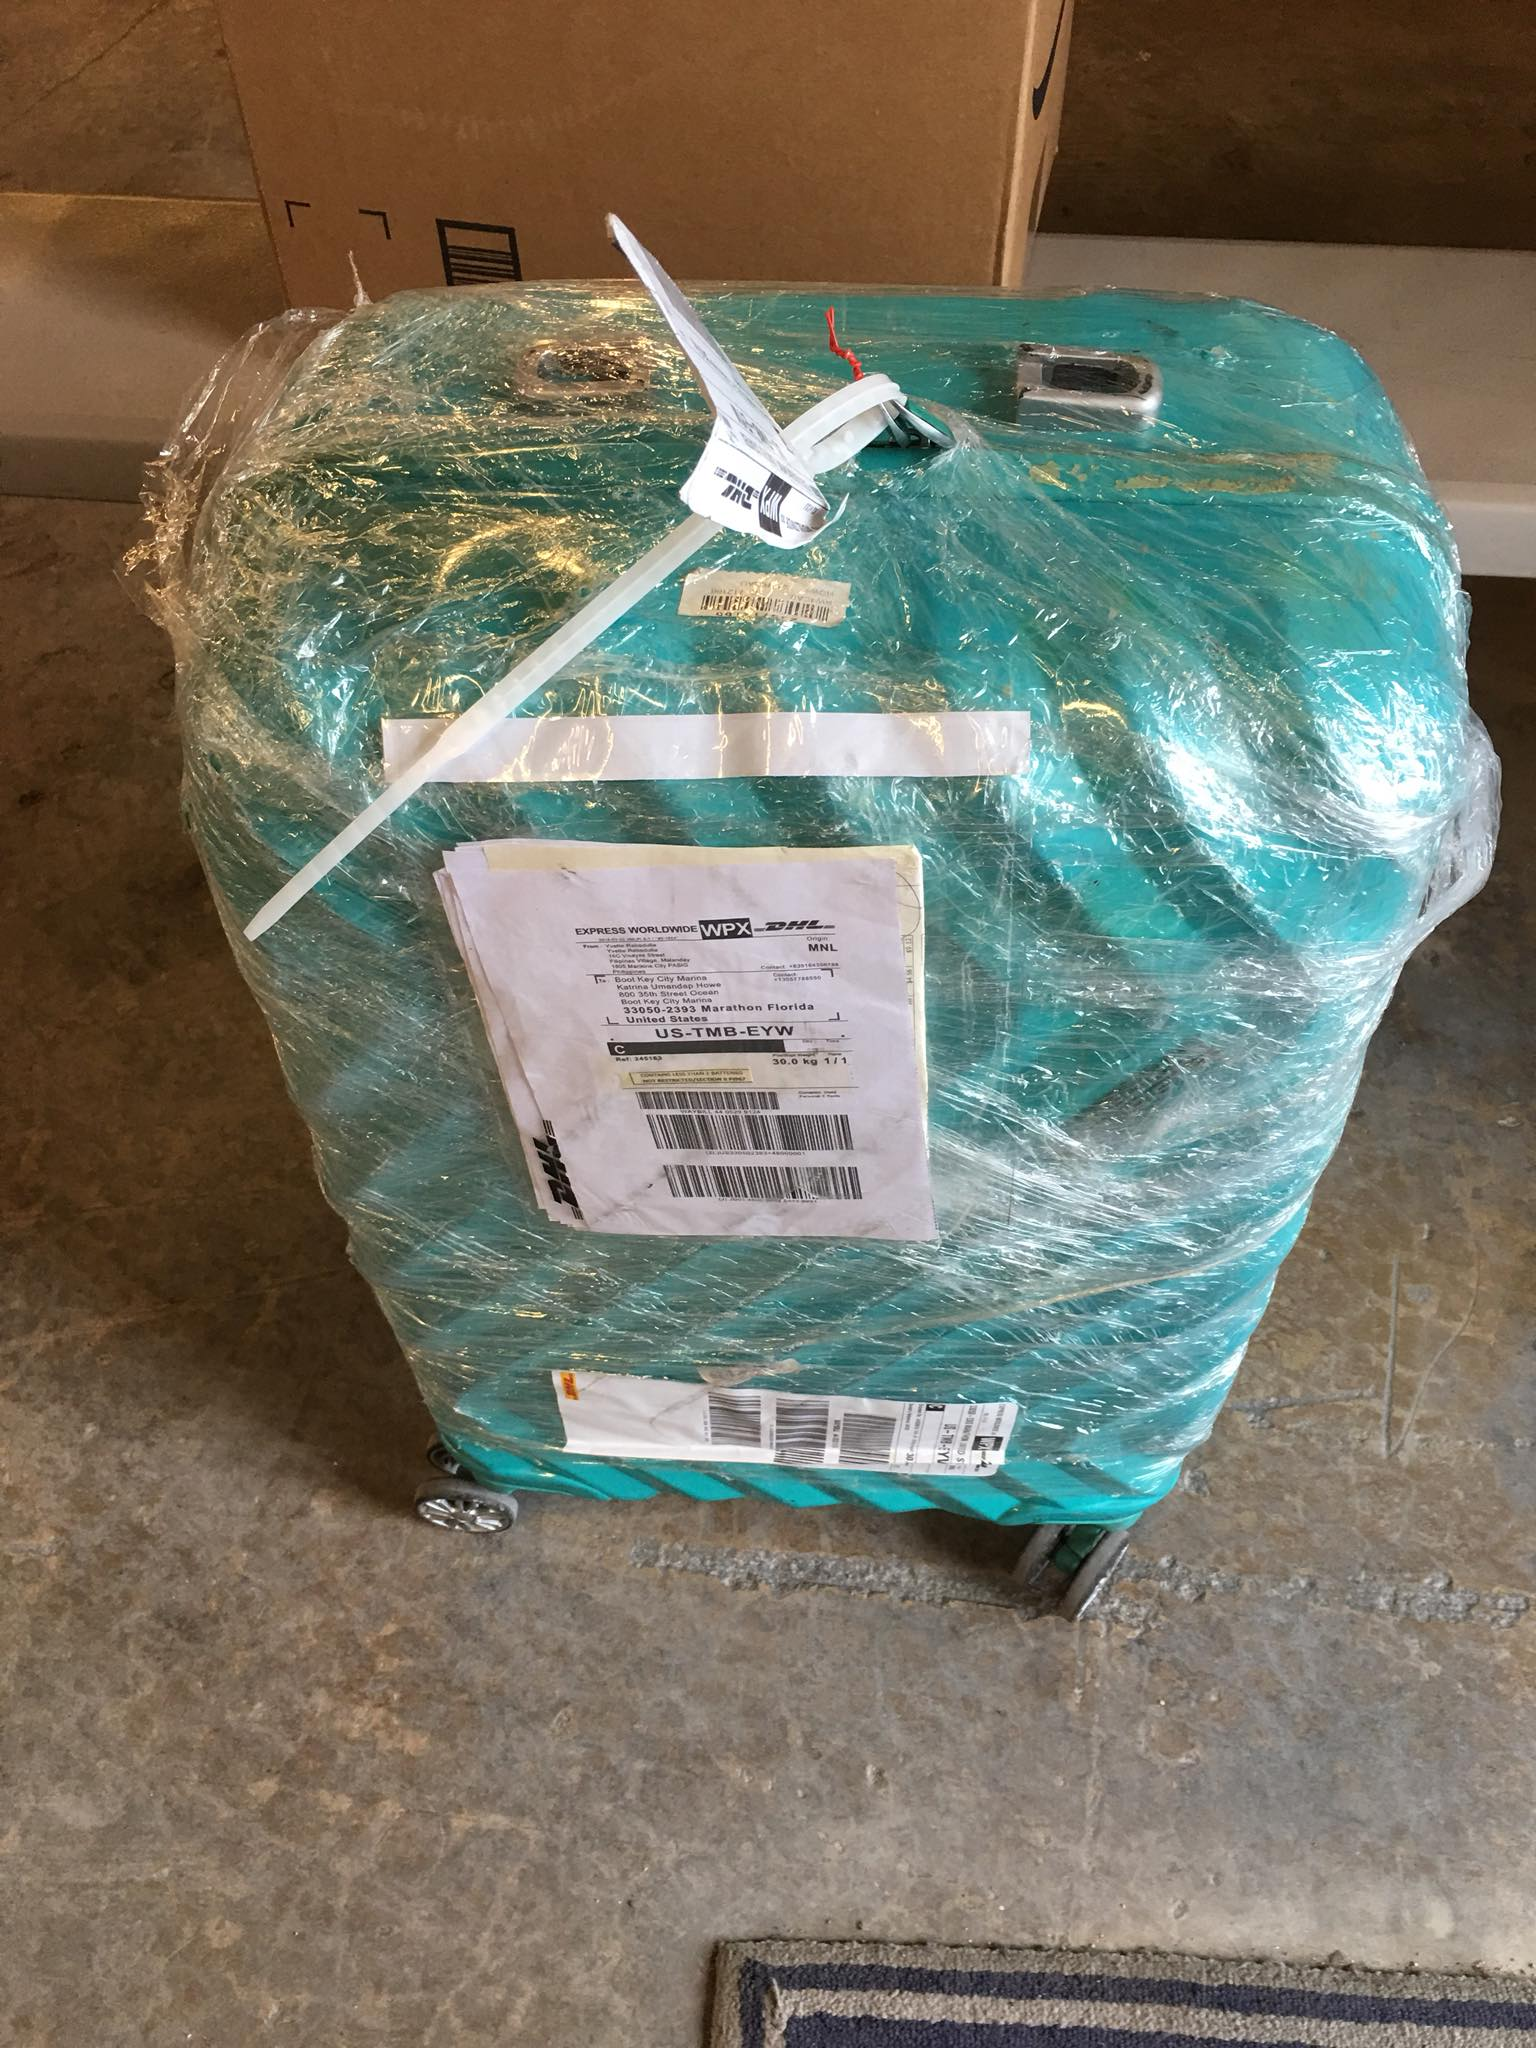 How to Ship Packages and Luggage from The Philippines to USA4.jpg